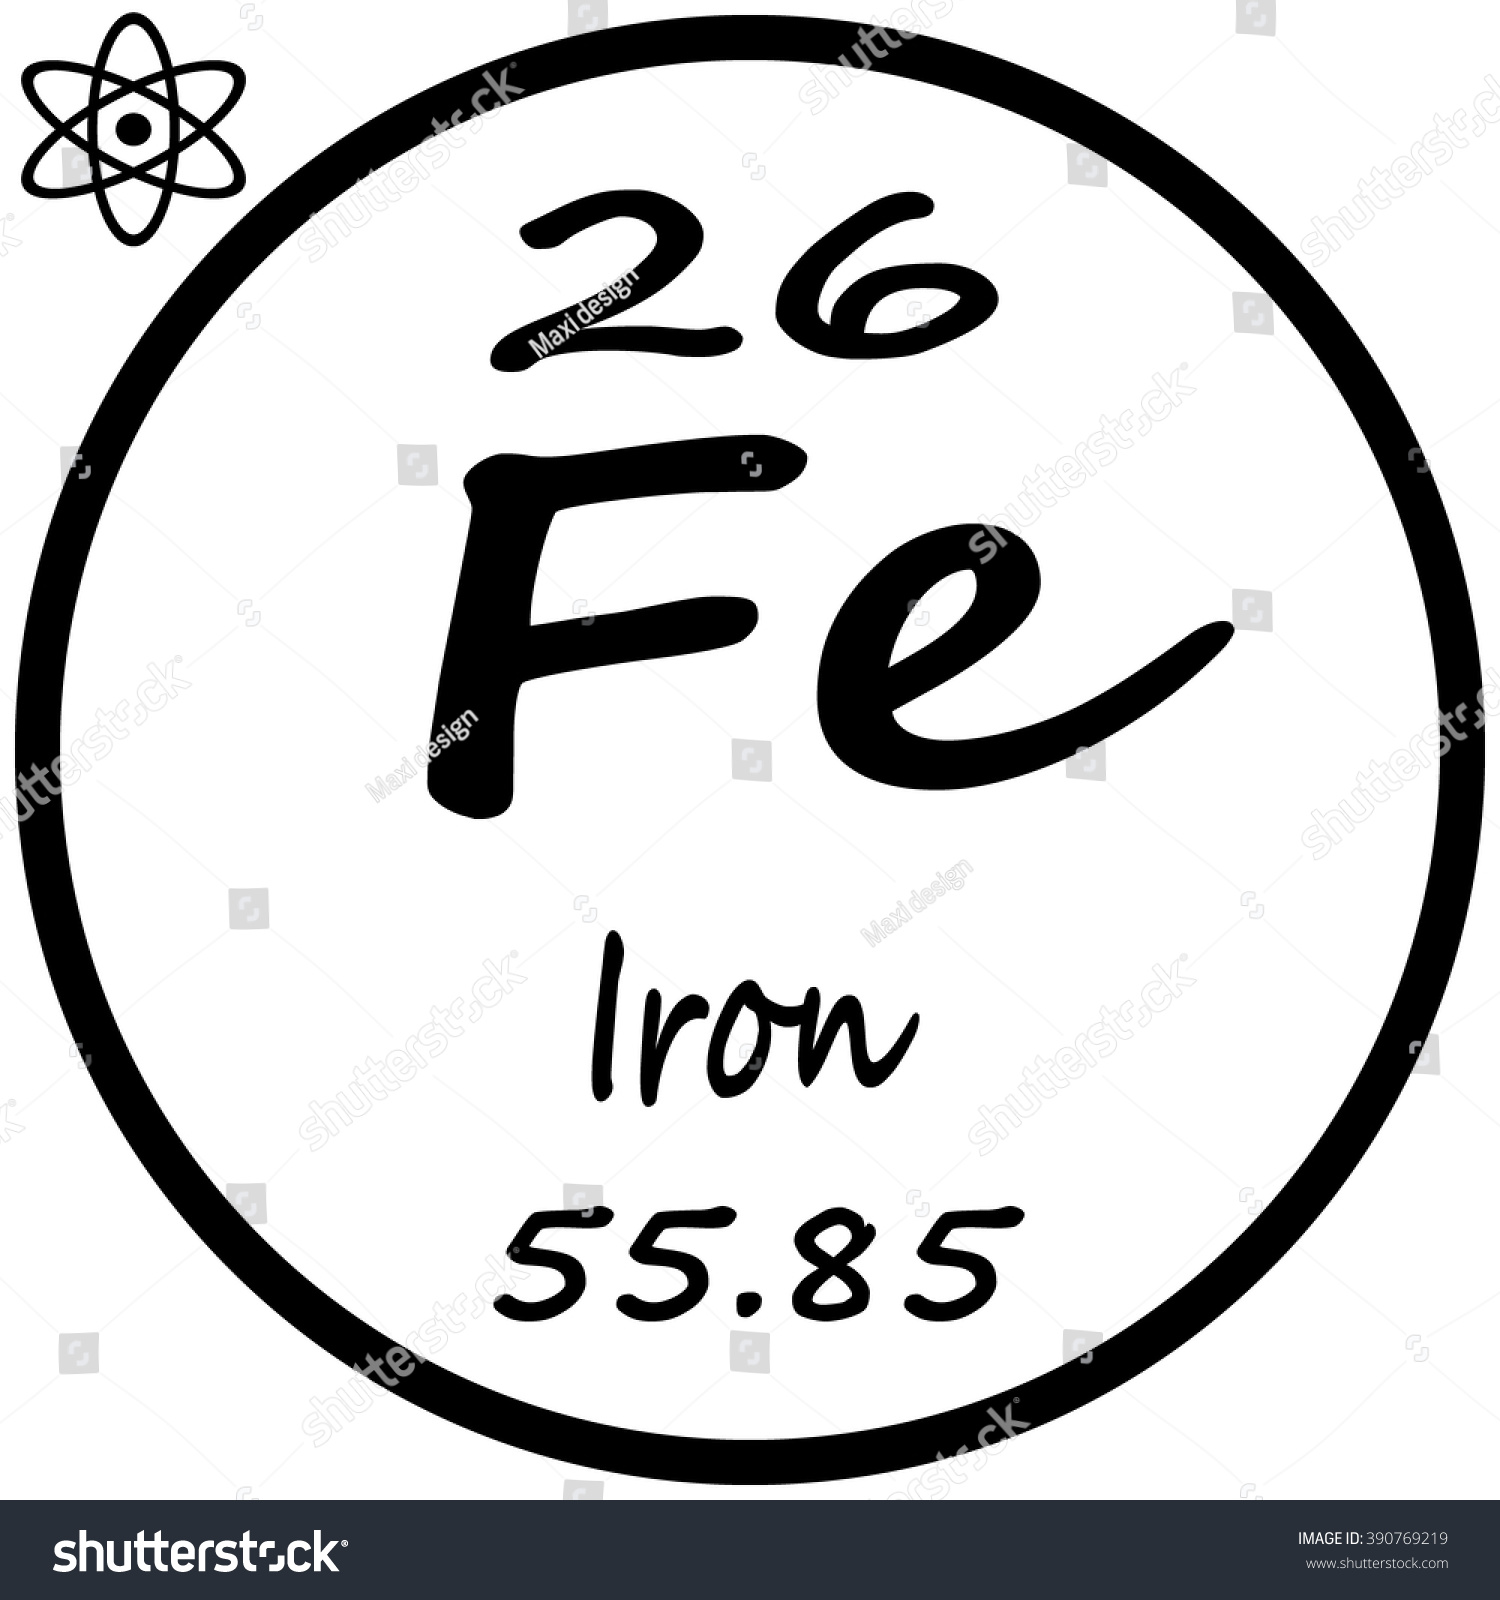 Periodic table elements iron stock vector 390769219 shutterstock periodic table of elements iron gamestrikefo Image collections